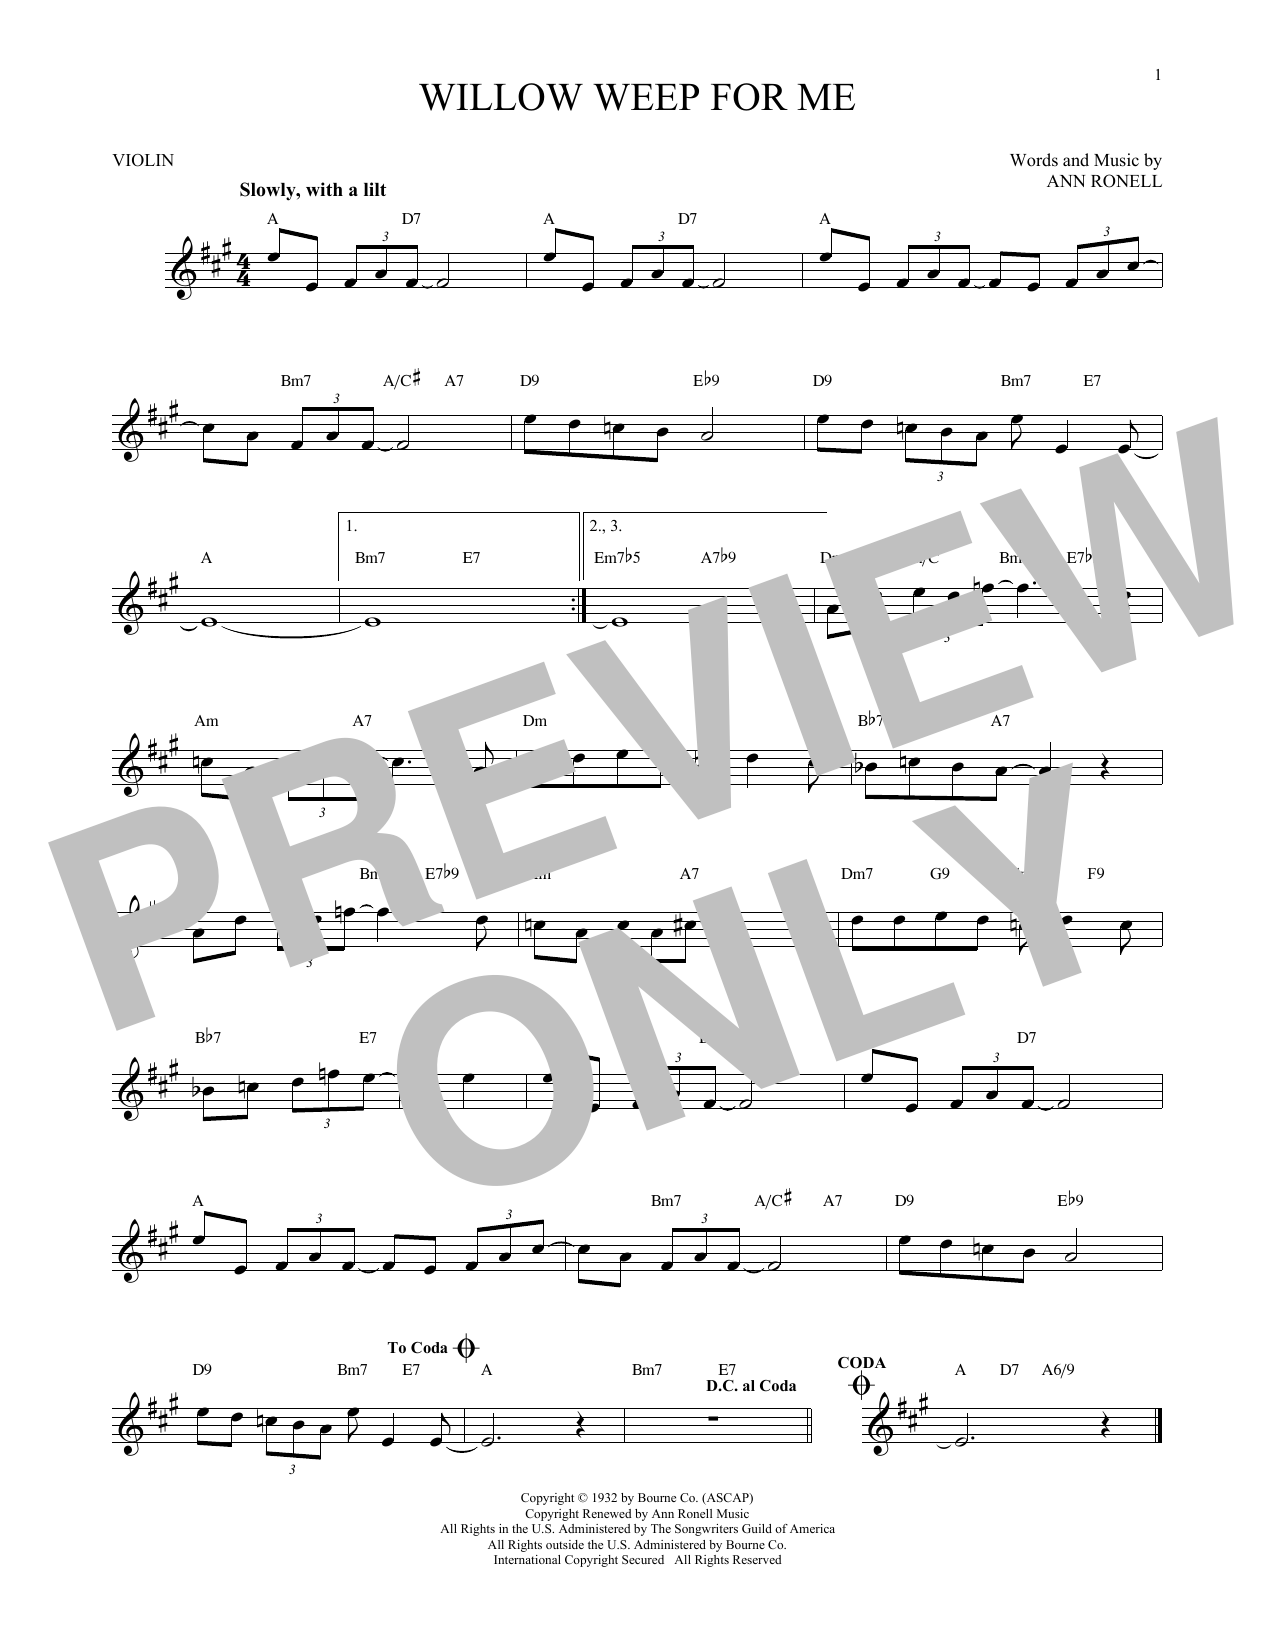 Willow Weep For Me (Violin Solo)